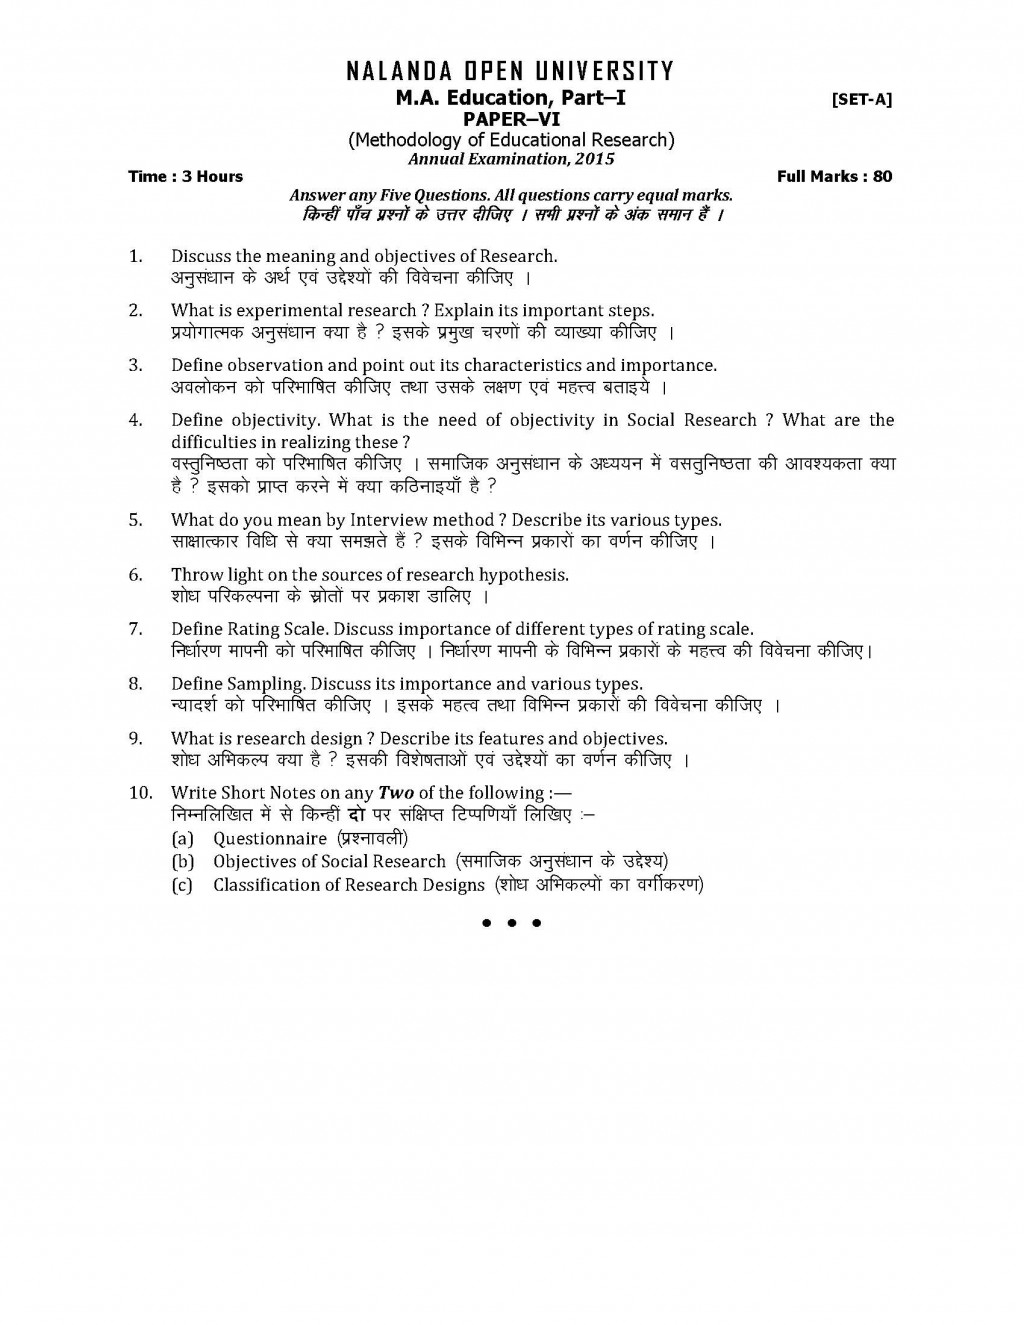 007 Educational Research Past Exam Papers Ma Education Methodology Of Part I Paper Amazing Large